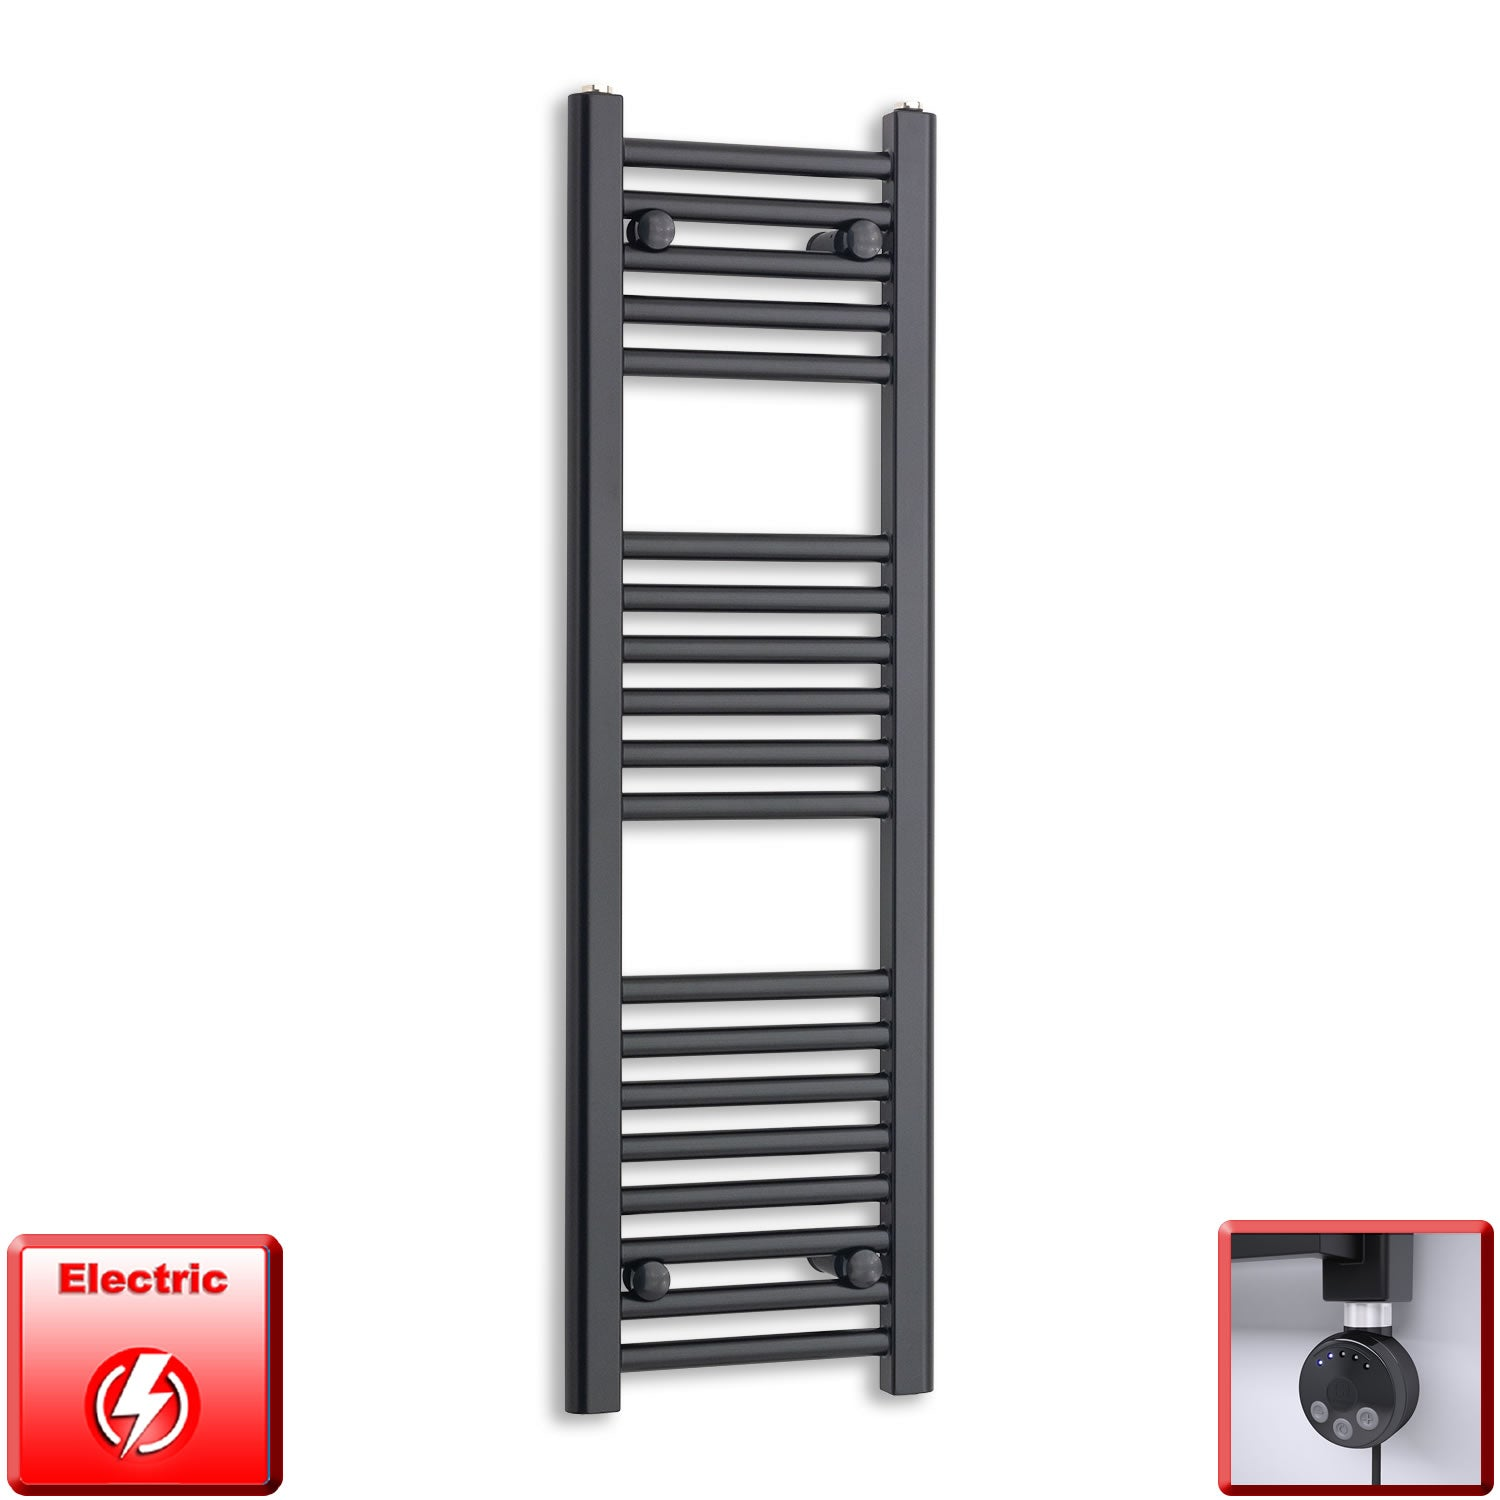 300mm Wide 1000mm High Pre-Filled Black Electric Towel Rail Radiator With Thermostatic MEG Element